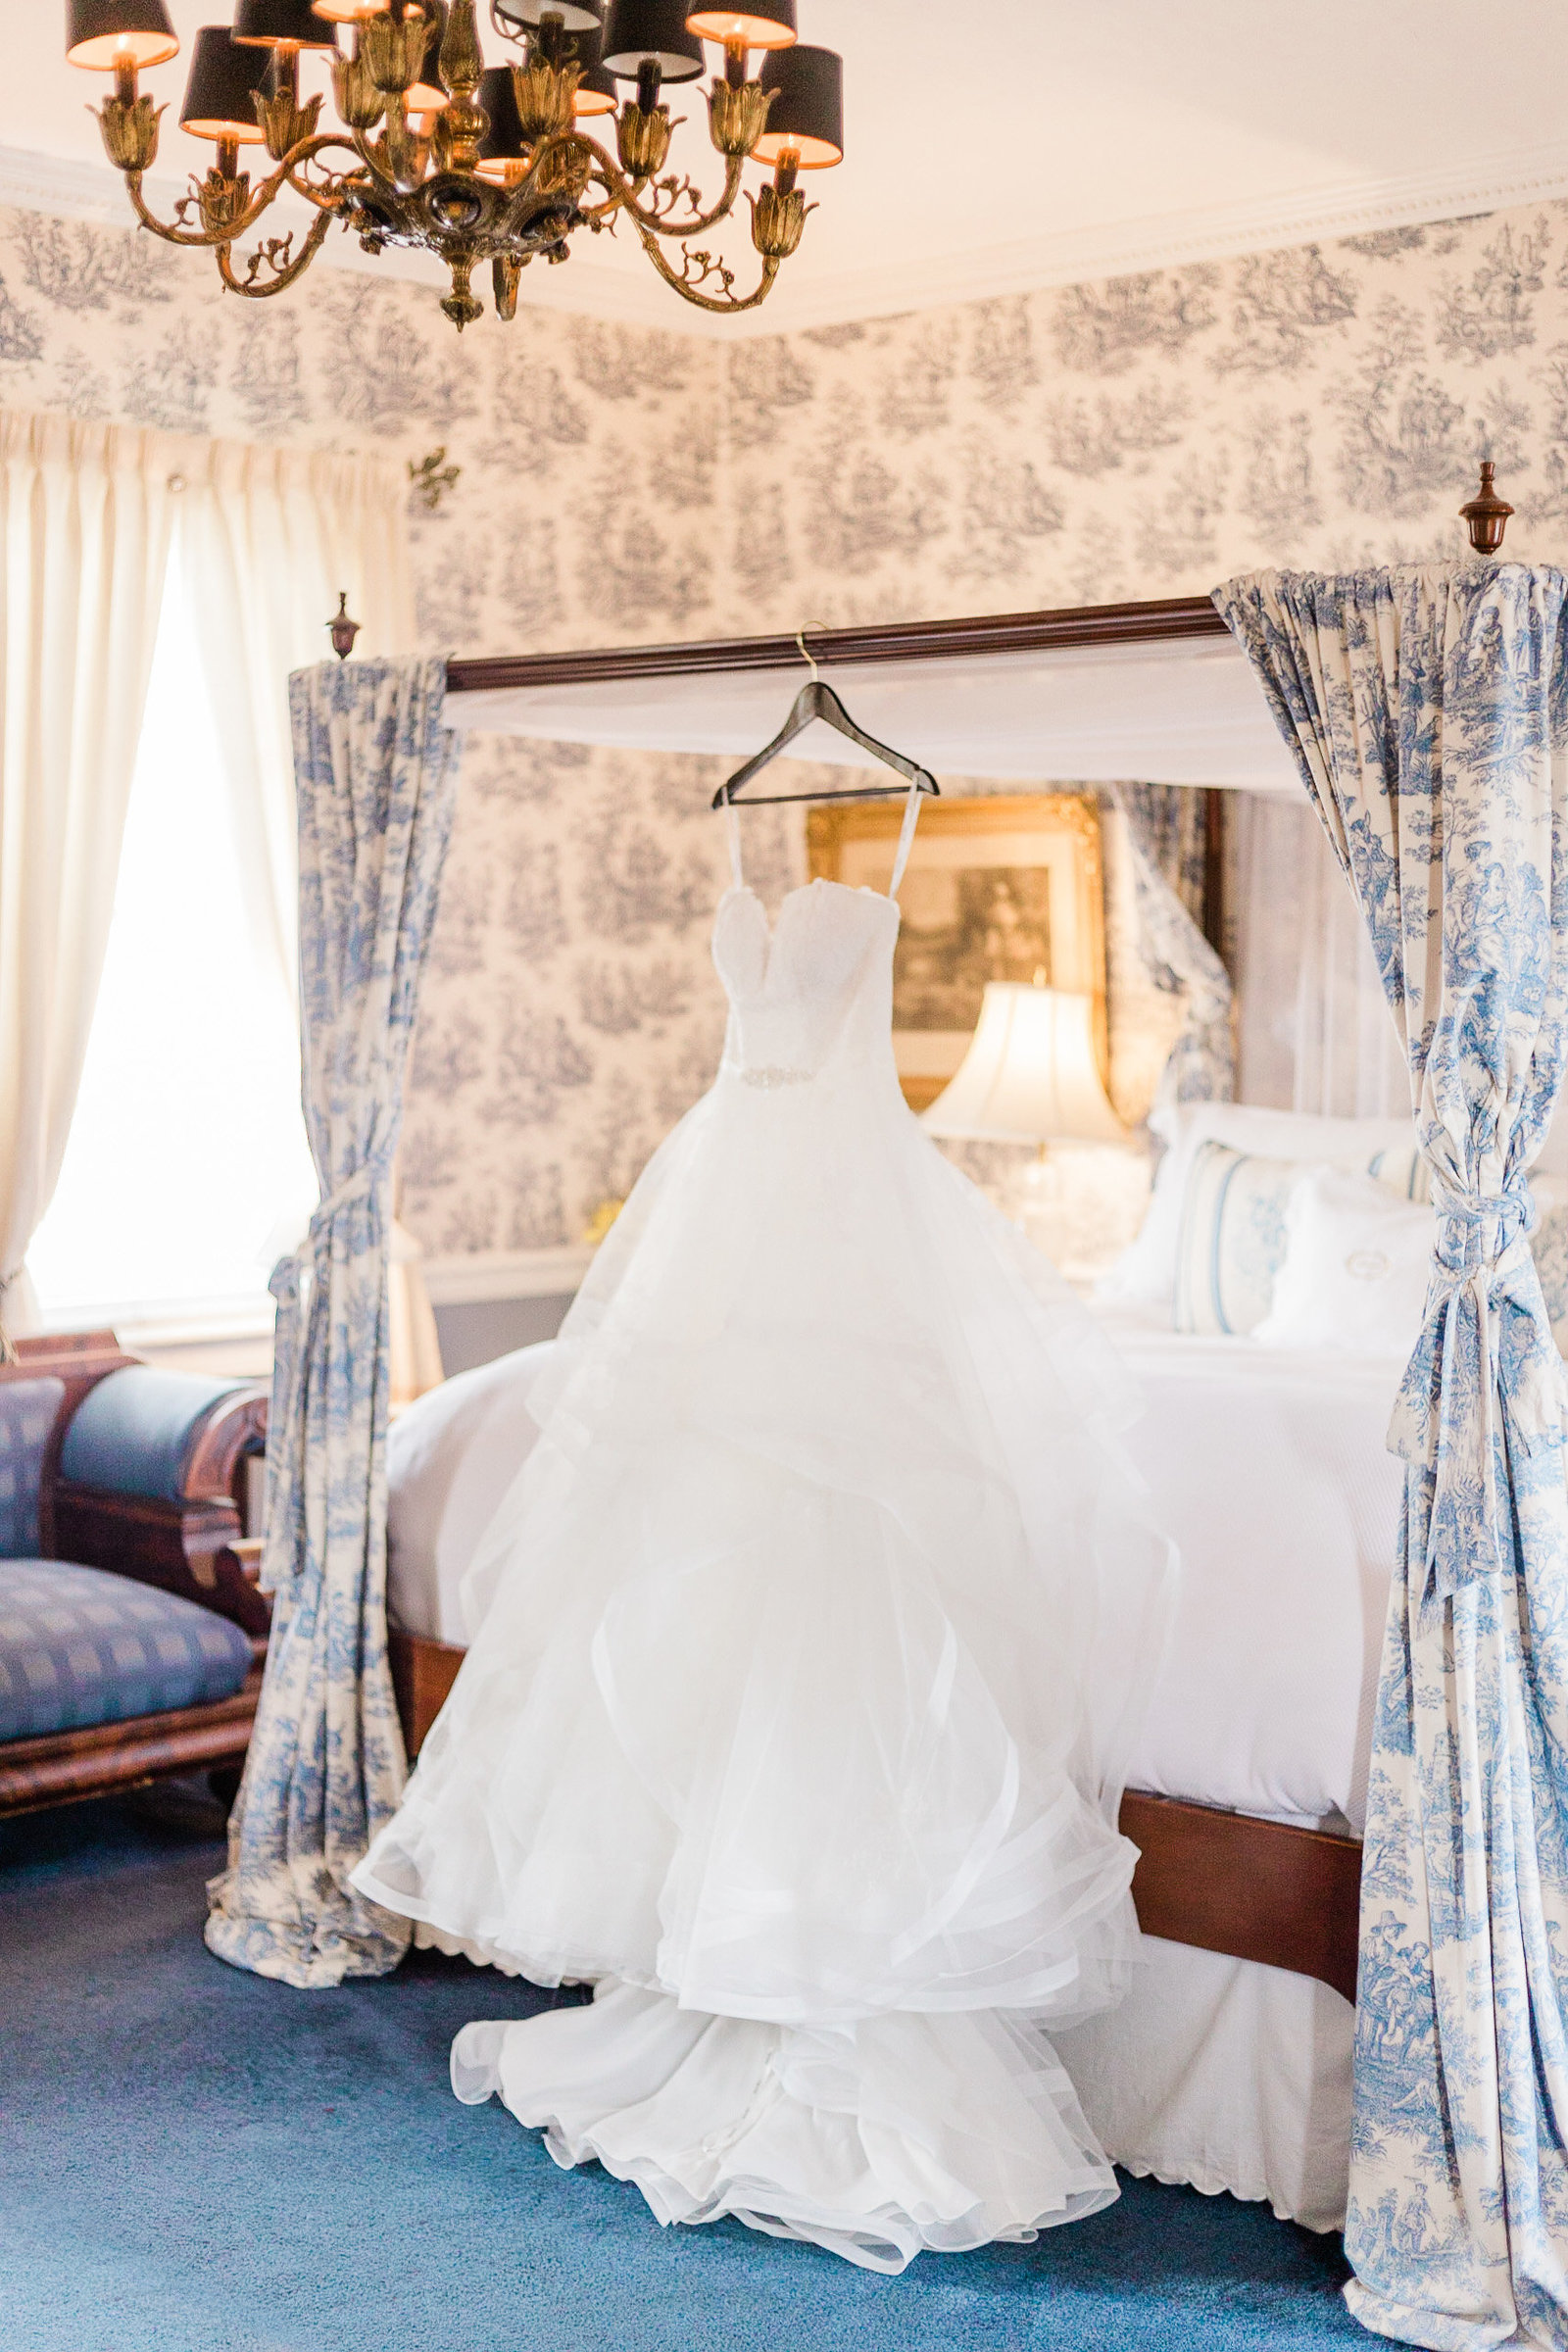 •	Wedding Dress hanging on a hanger above a beautiful country style bed at Antrim 1844